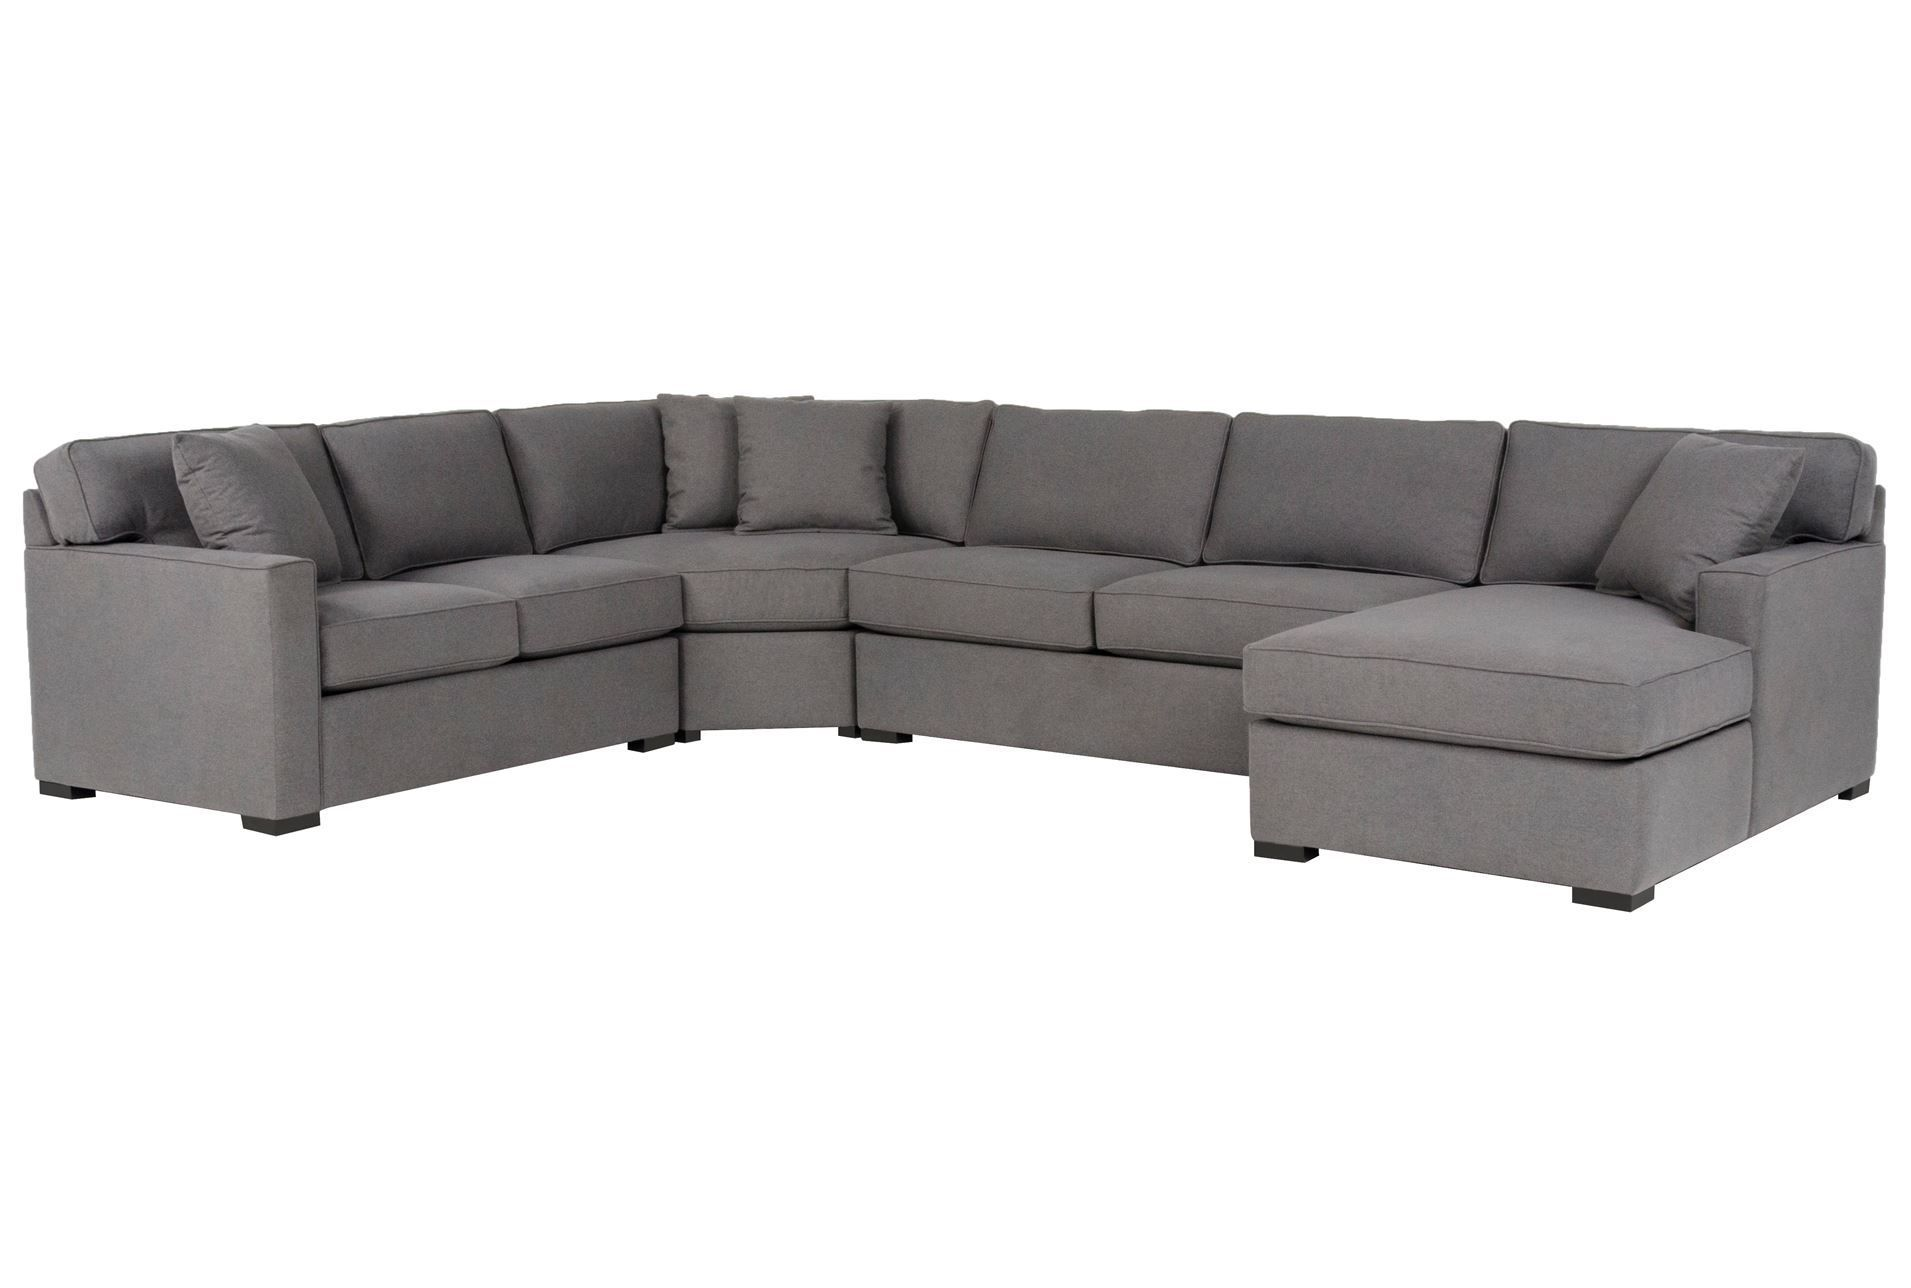 Alder Foam 4 Piece Sectional W Right Arm Facing Chaise Comfy Seating Sectional Sofa Inspiration